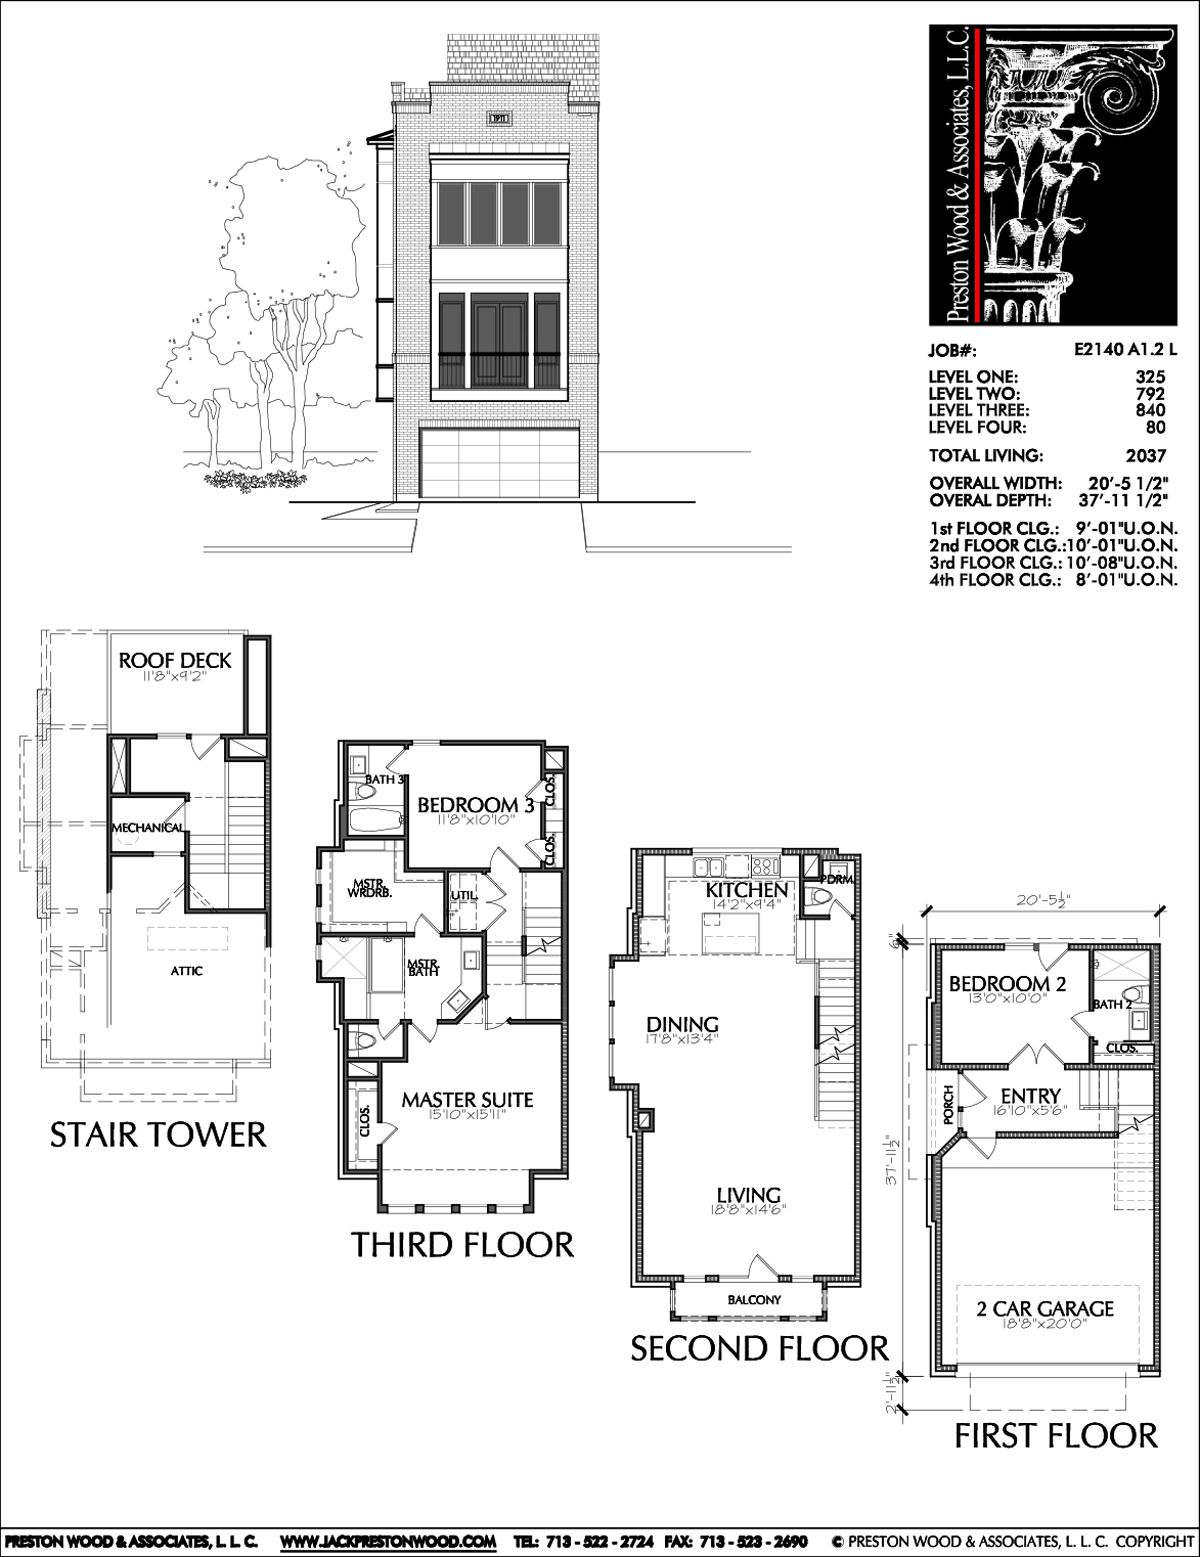 Townhome Plan E2140 A1 2L House Plans in 2019